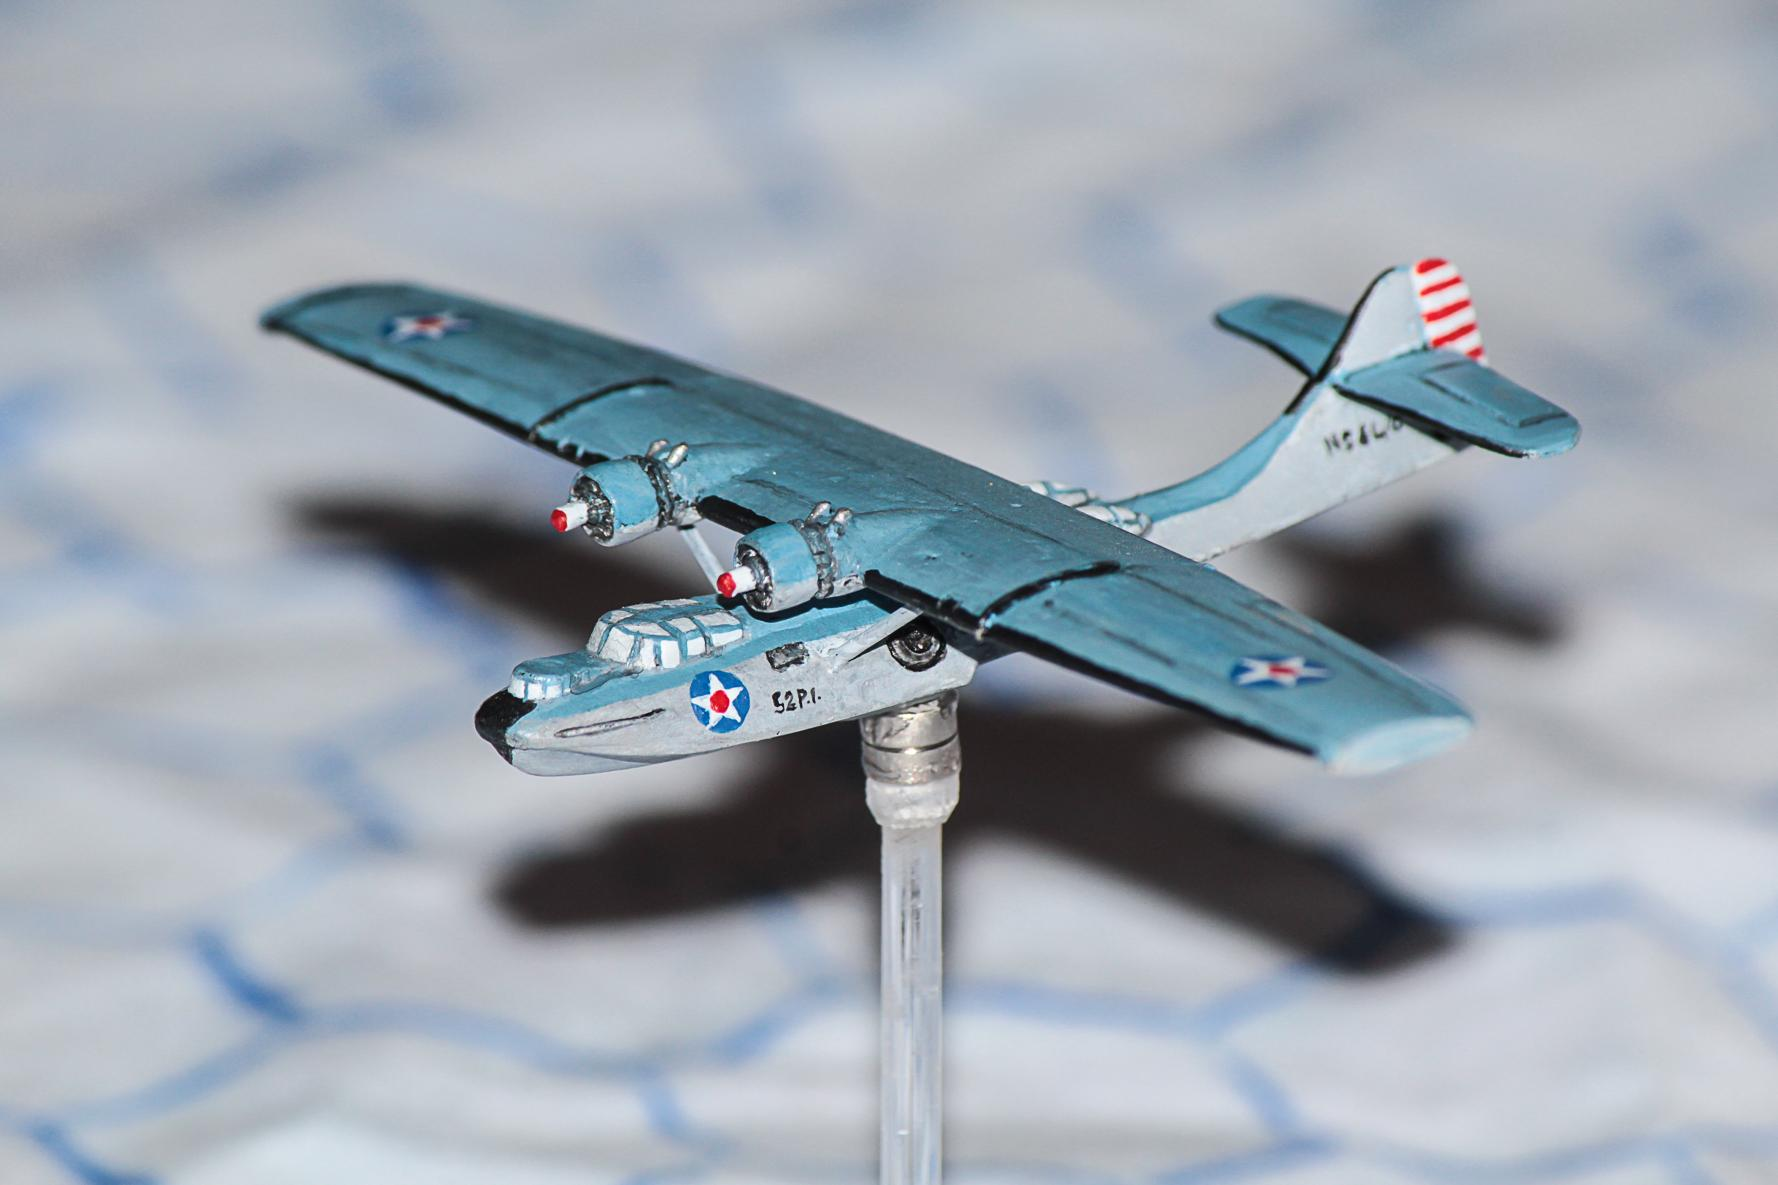 1:300, 6mm, Airborne, Aircraft, Airplane, Aviation, Bomber, Check Your 6!, Fliers, Flying Boat, Historical, World War 2